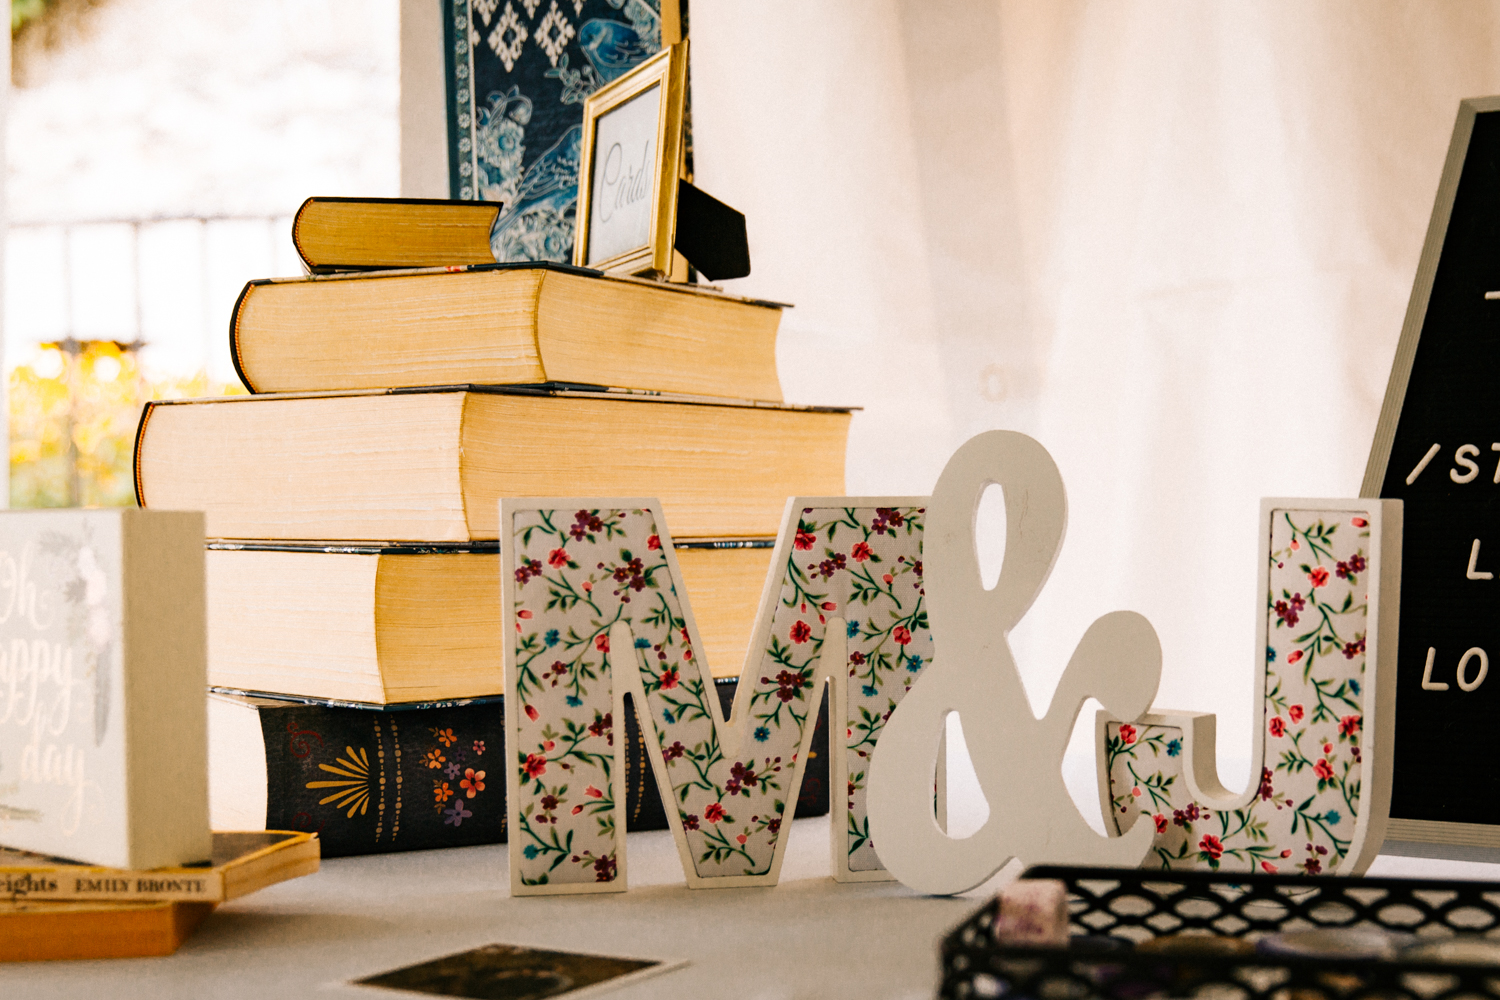 literature-book-theme-wedding-new-england-massachusetts-rhode-island-gwyn-careg-inn-connecticut-pomfret.jpg